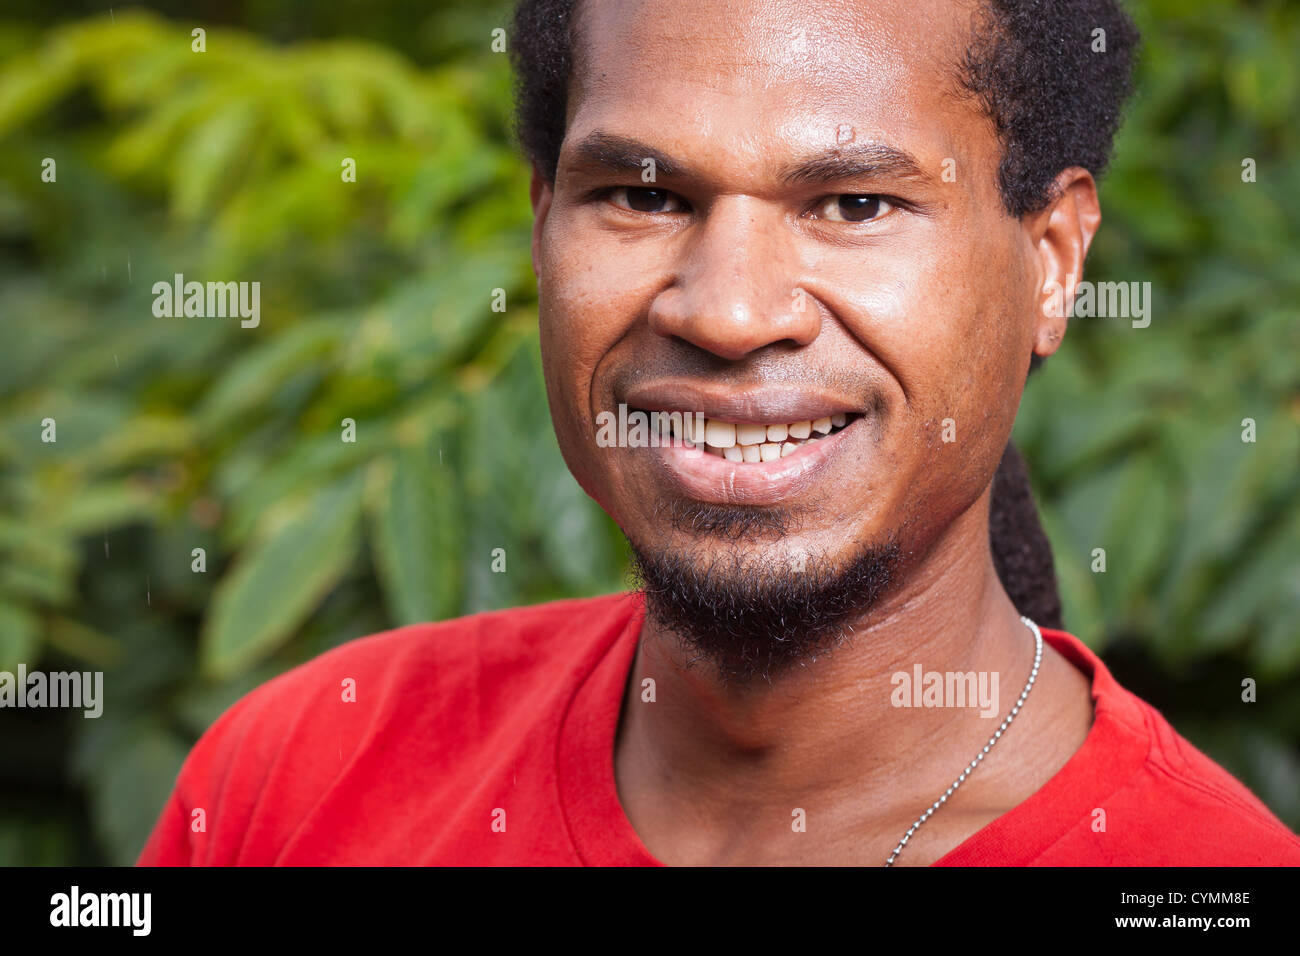 Close-up portrait of a dark skinned smiling young man - Stock Image